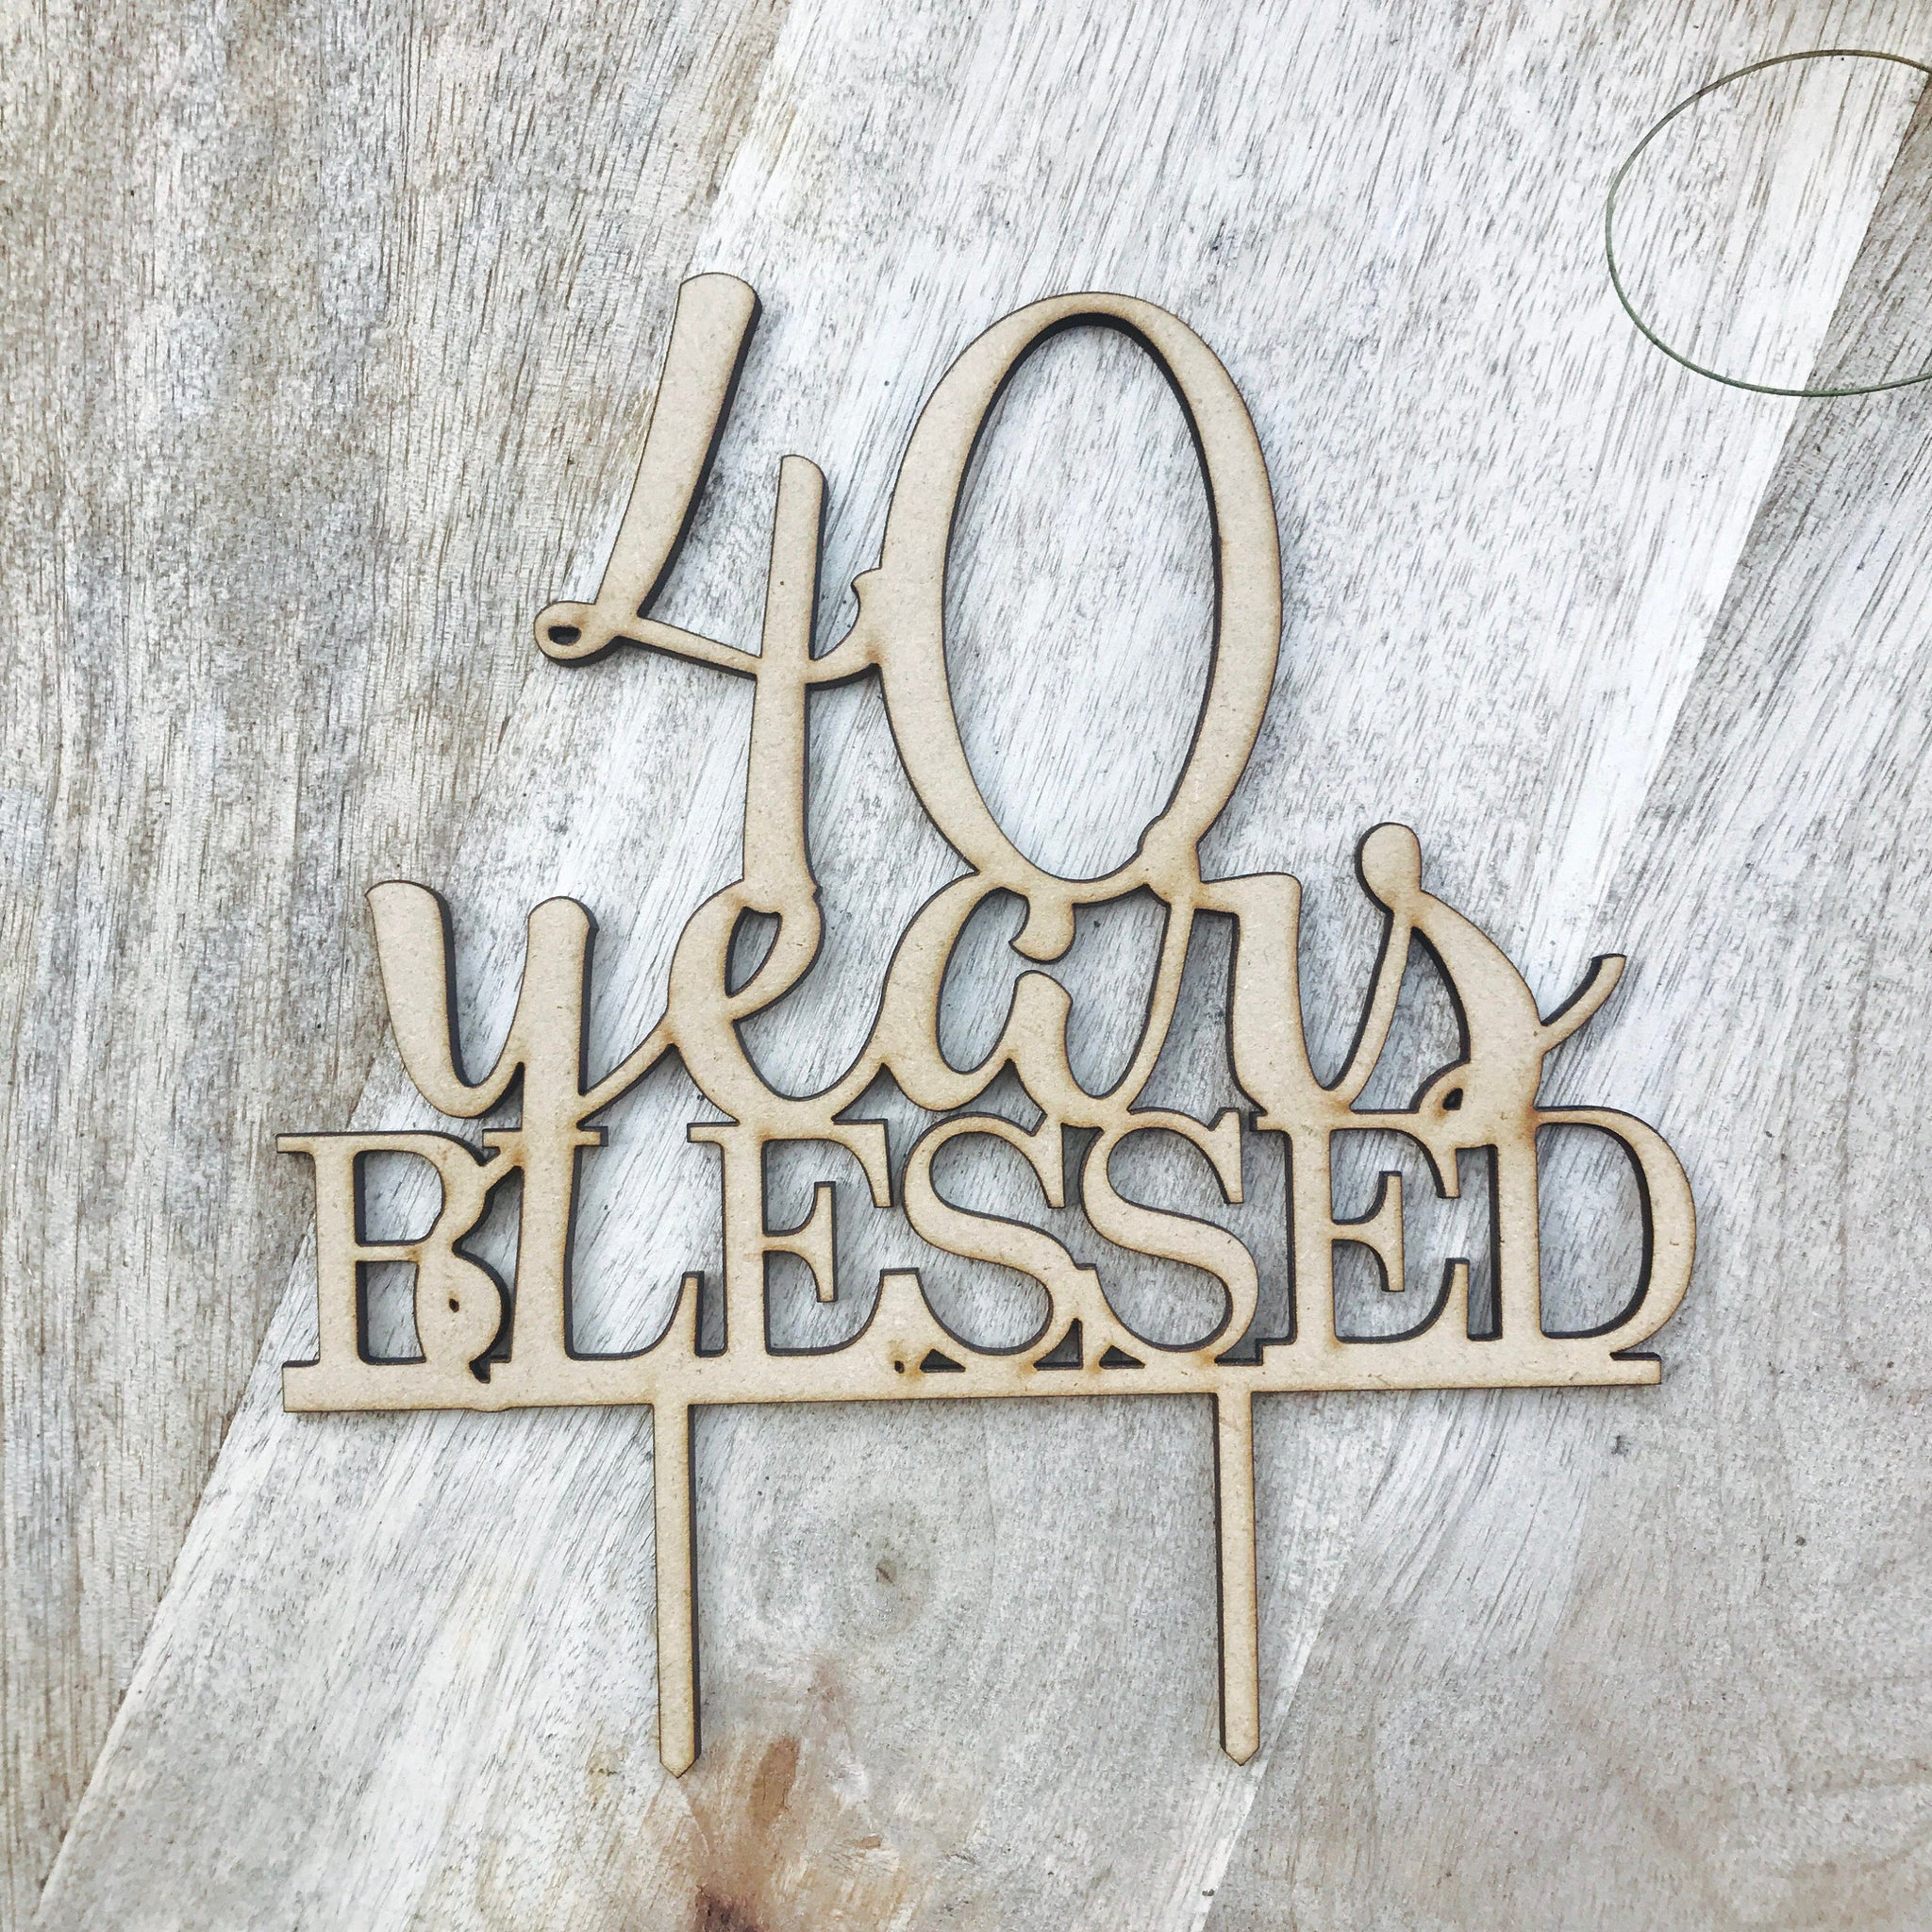 40 Years Blessed Cake Topper Anniversary Cake Topper Cake